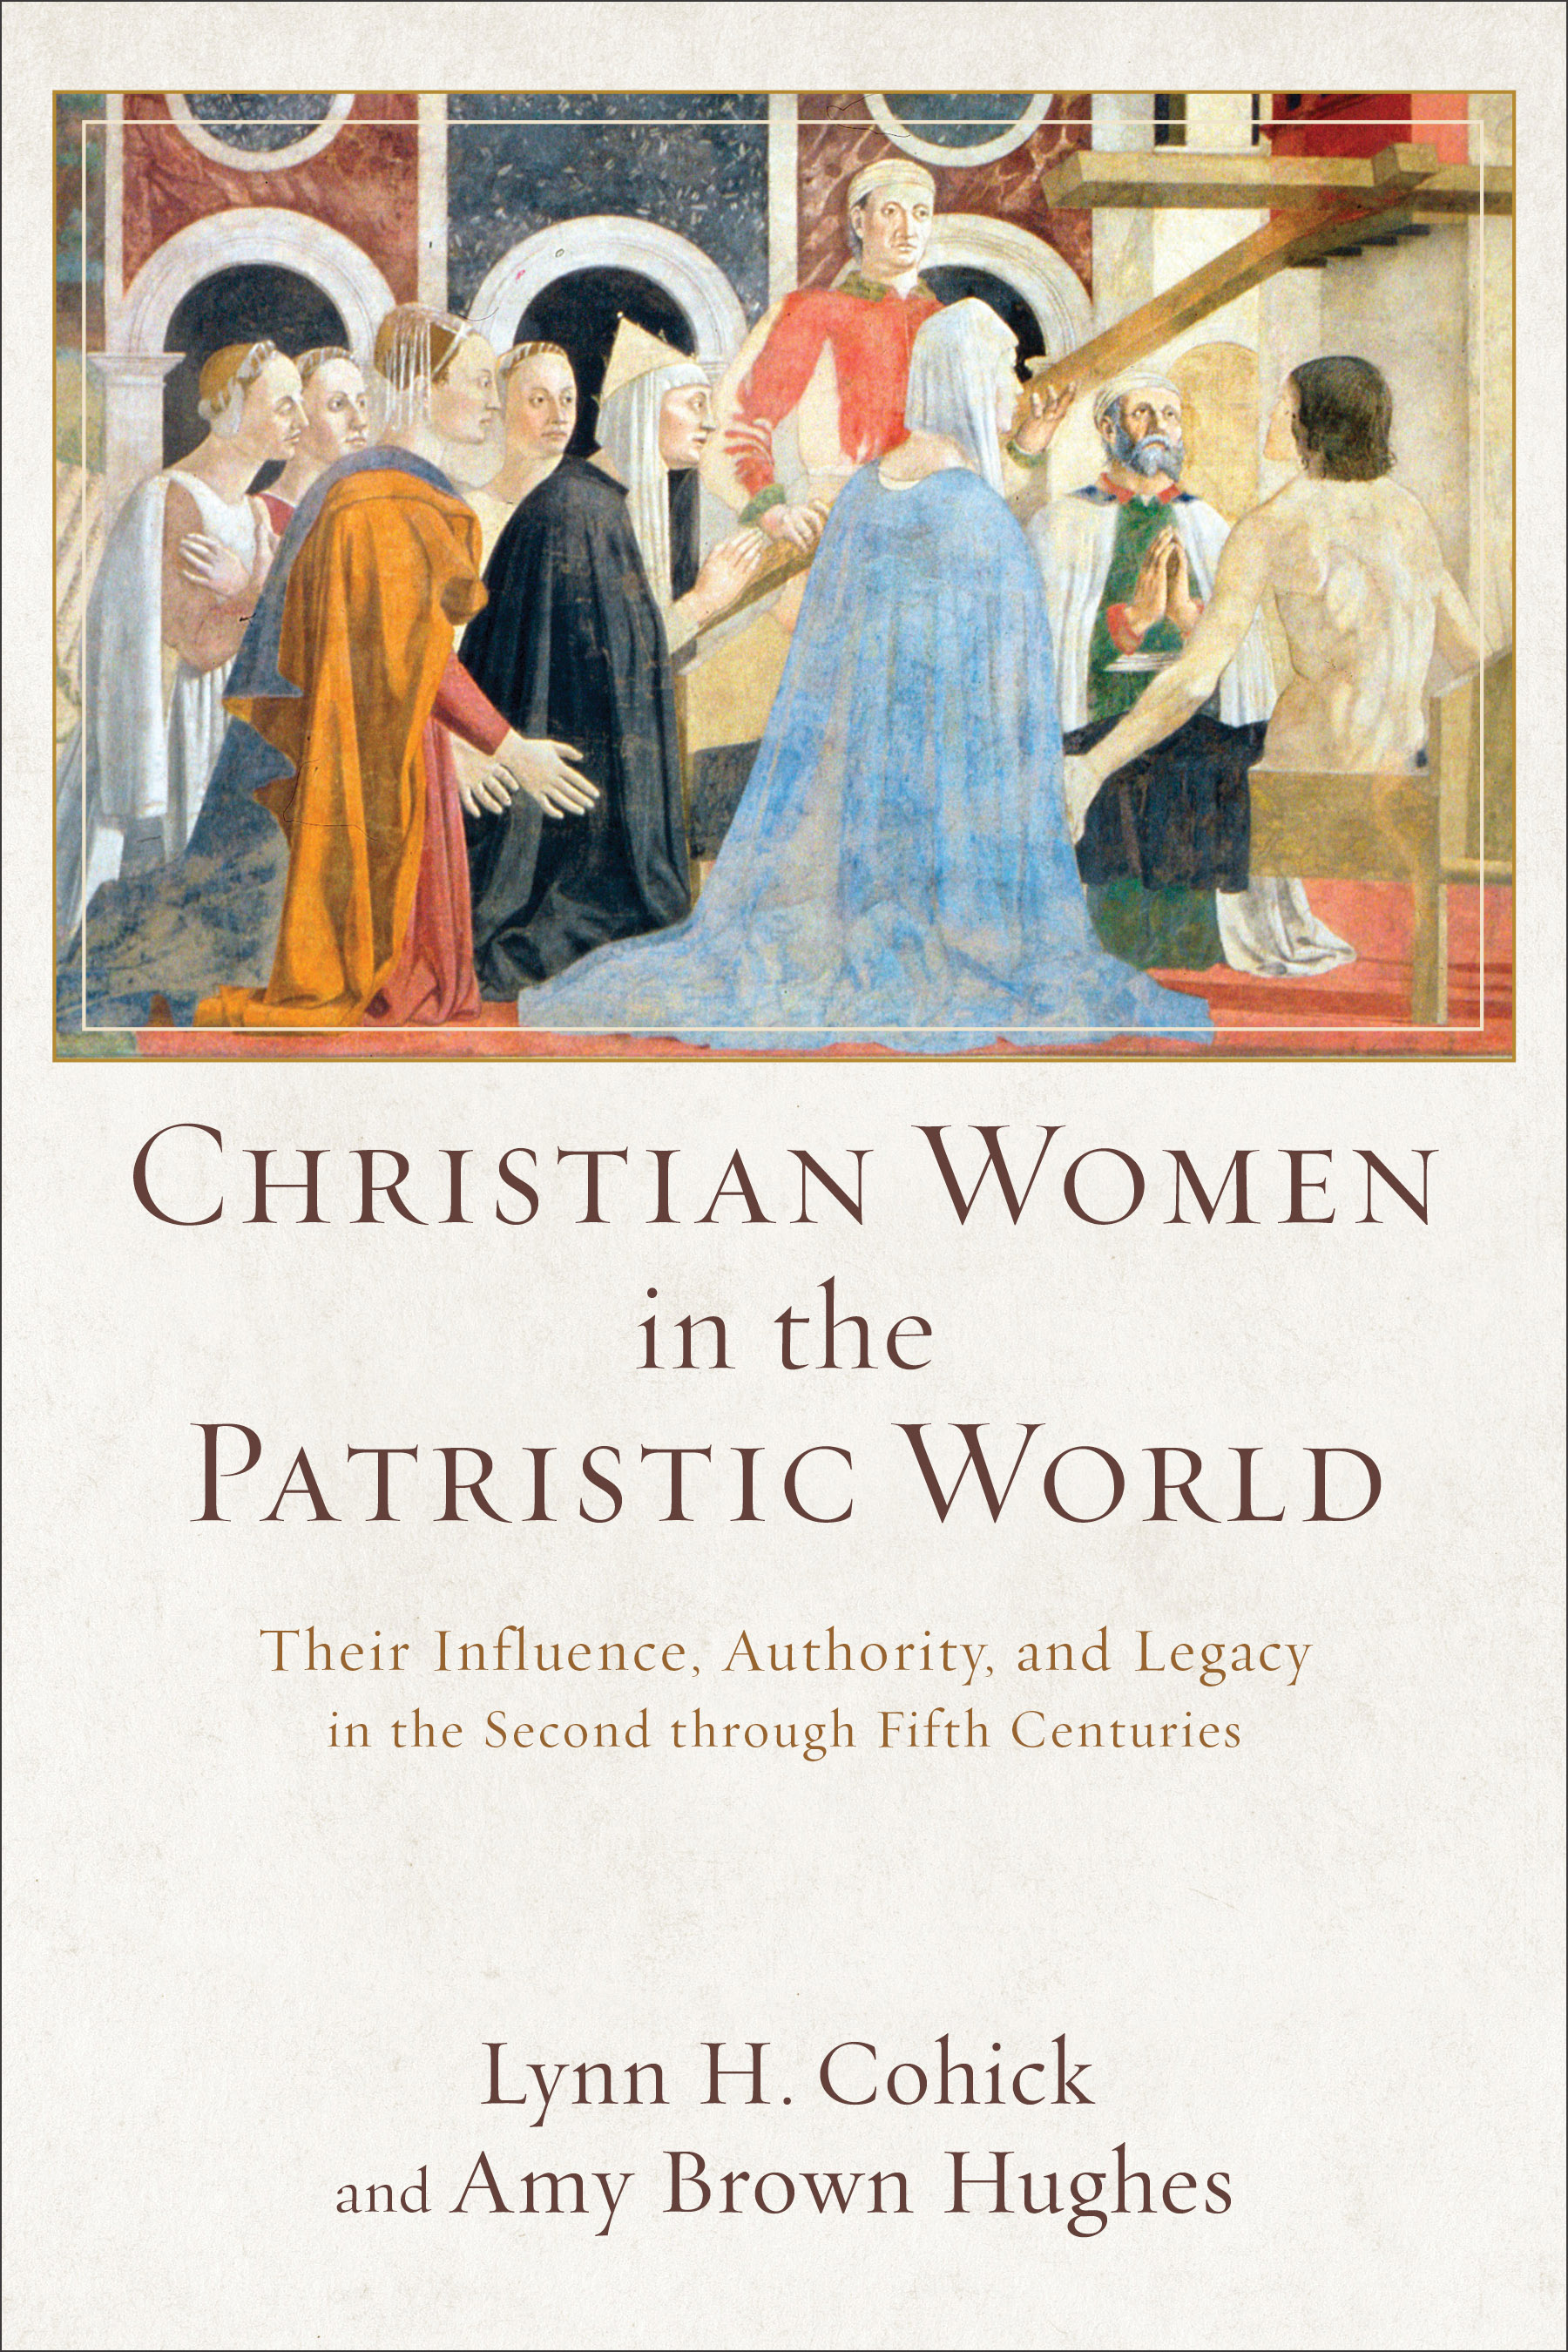 Response... - Christian Women in the Patristic World, Their Influence, Authority, and Legacy in the Second through Fifth Centuries, by Lynn H. Cohick and Amy Brown Hughes, is not an easy read. It is a worthwhile one.